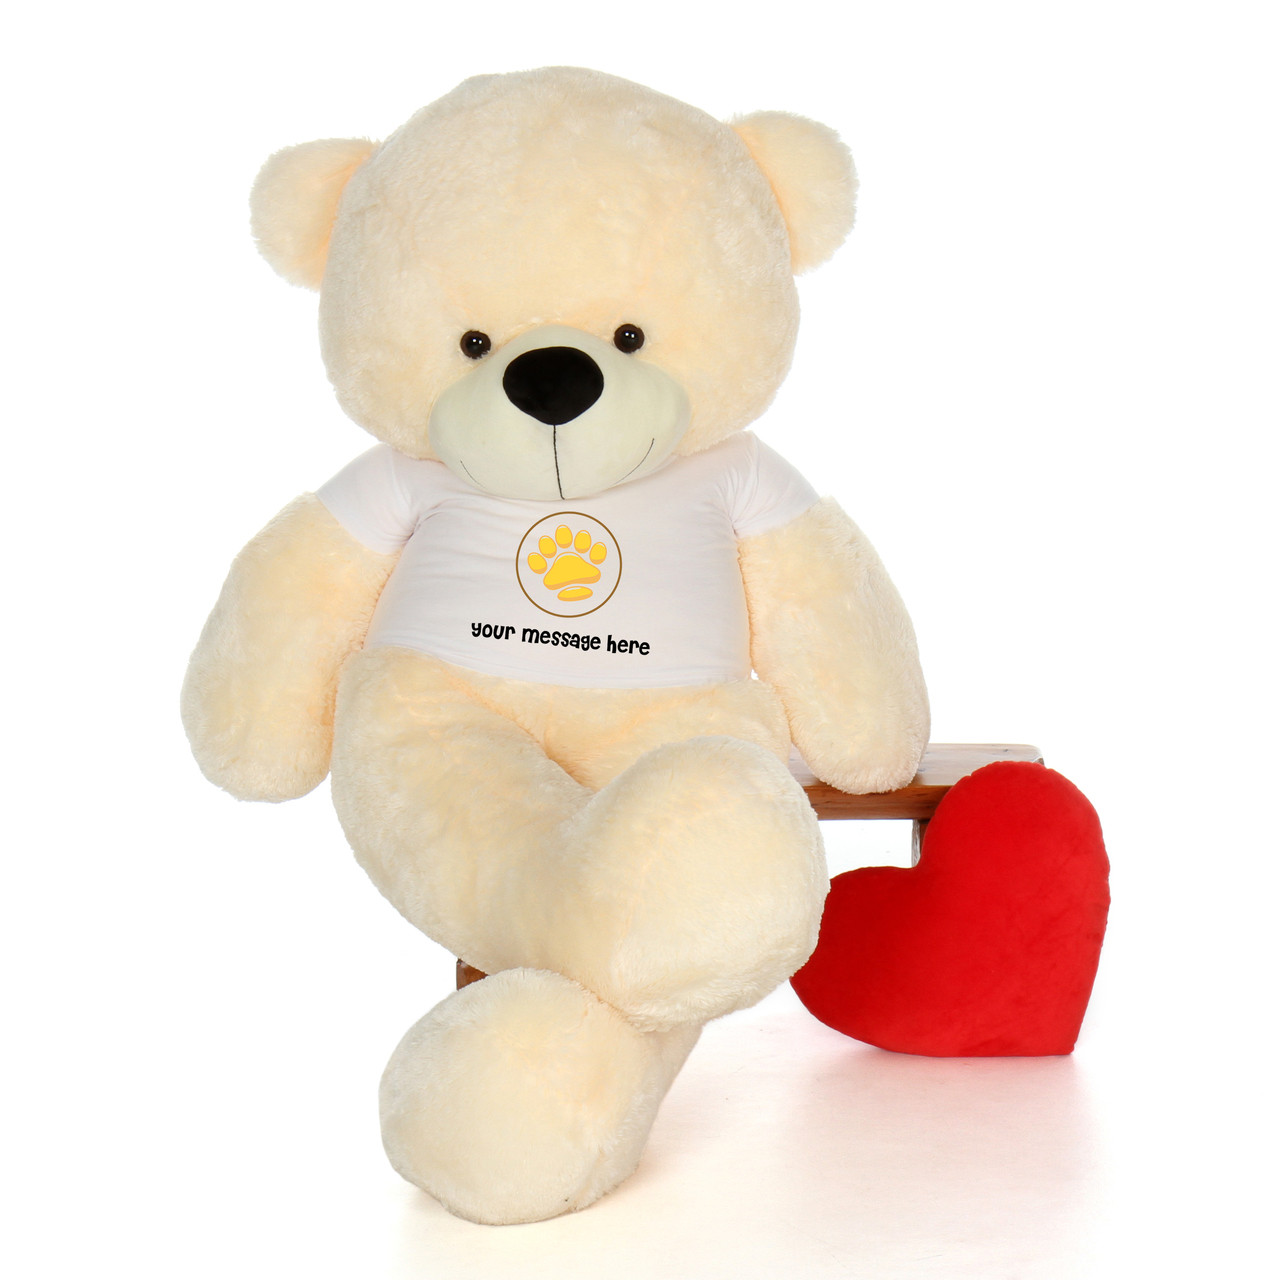 6ft Life Size Personalized Teddy Bears U2013 Customize Message And Your Fur  Color!